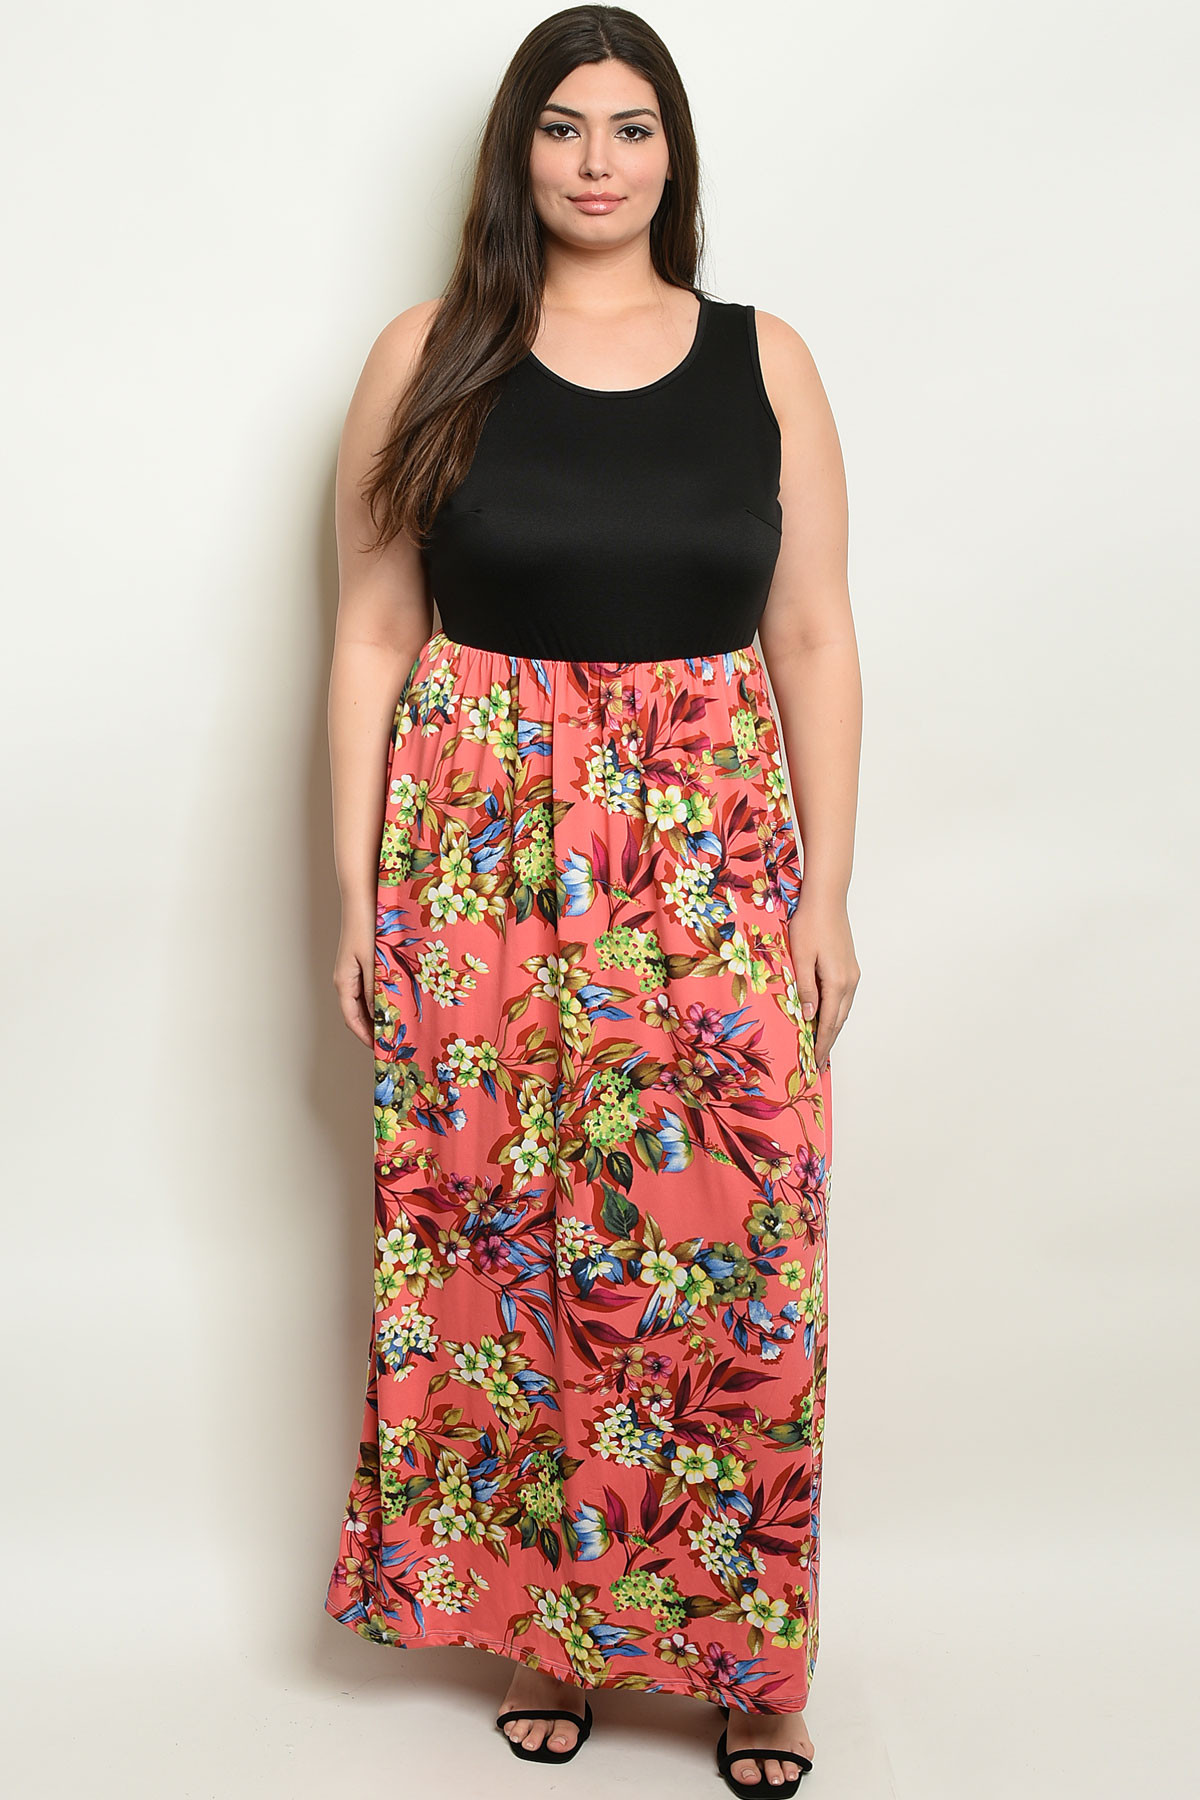 C12-A-1-D7511X BLACK CORAL FLORAL PLUS SIZE DRESS 2-2-2